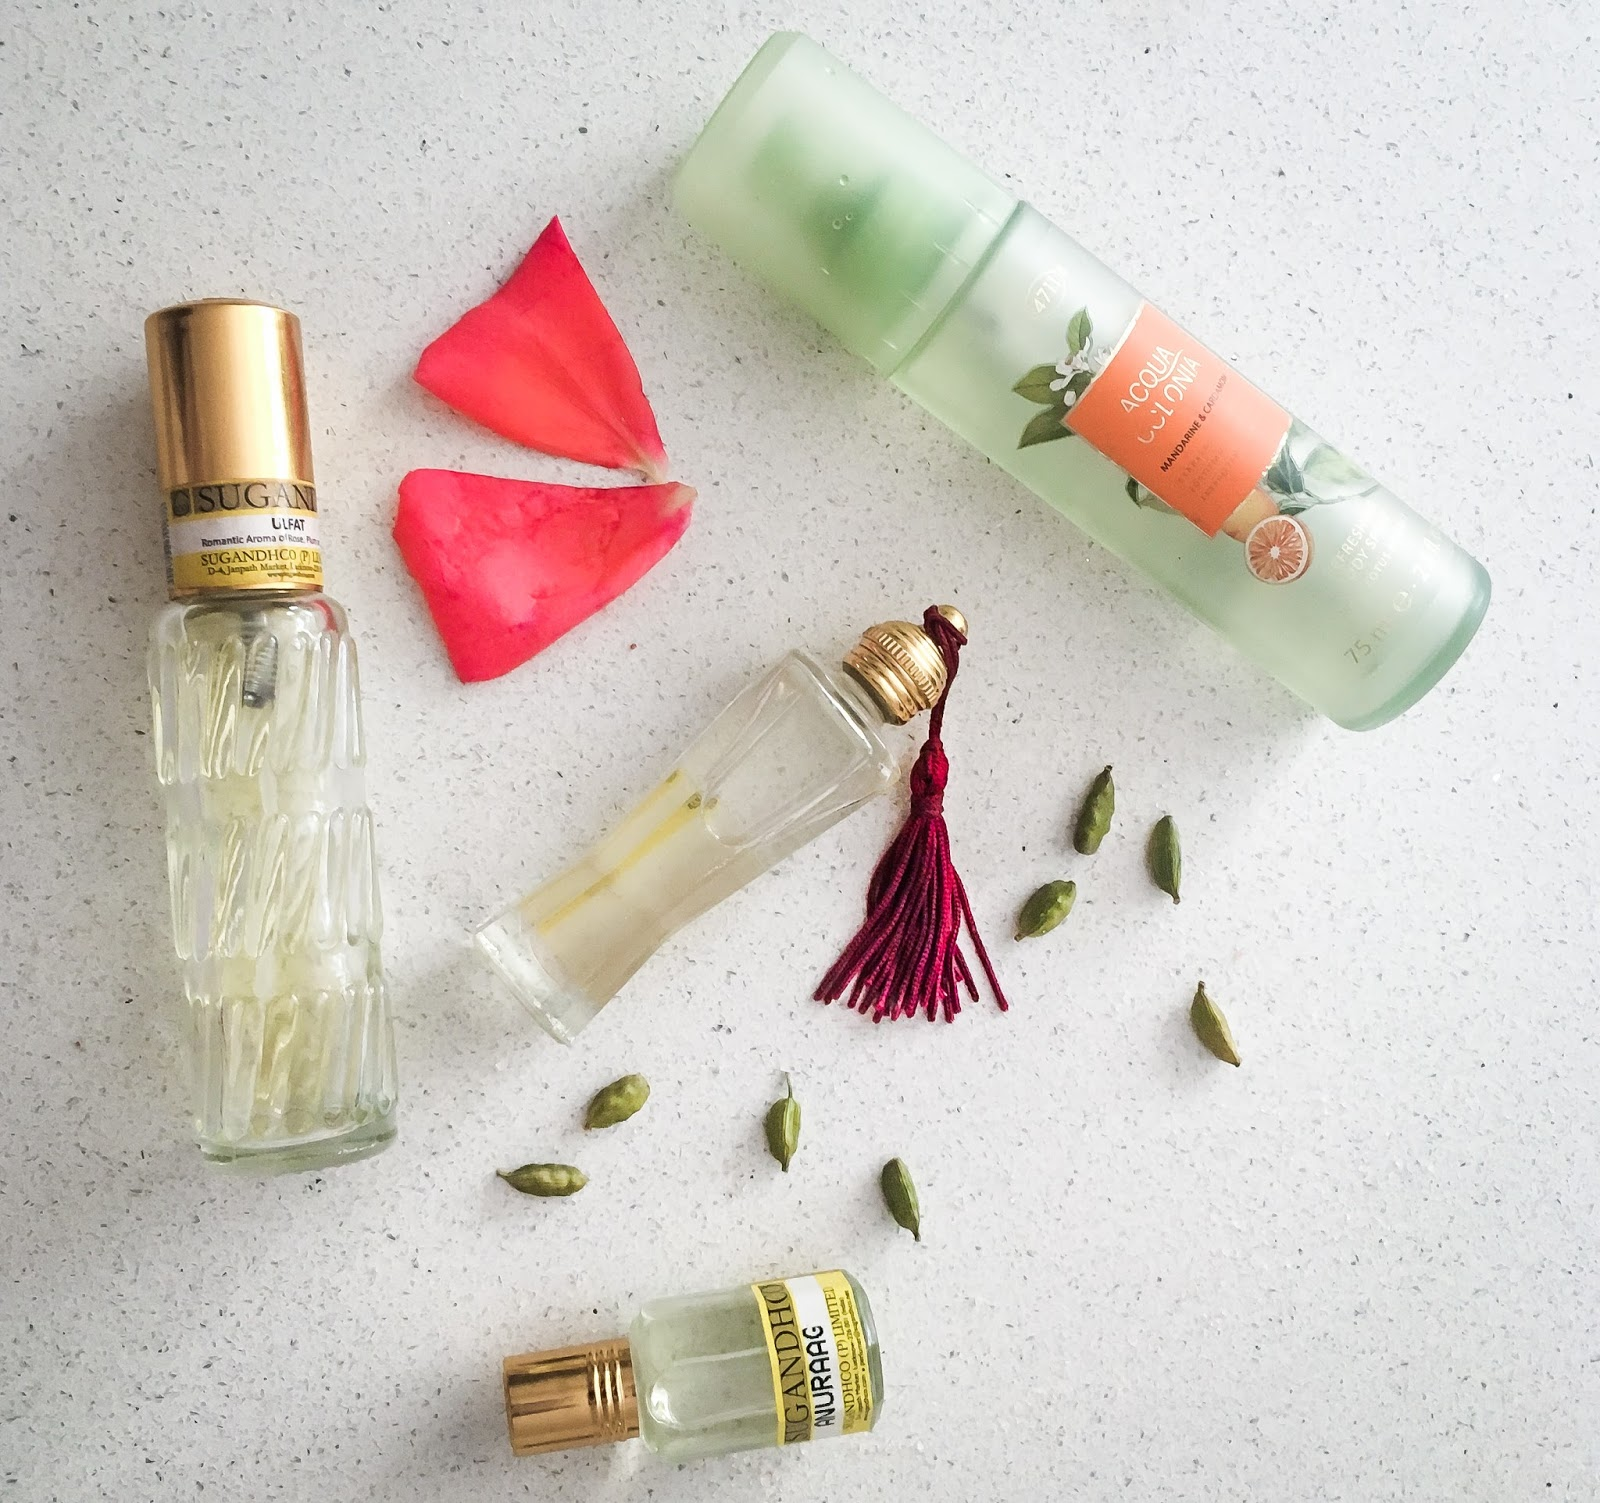 Sugandhco Perfumes and Attars